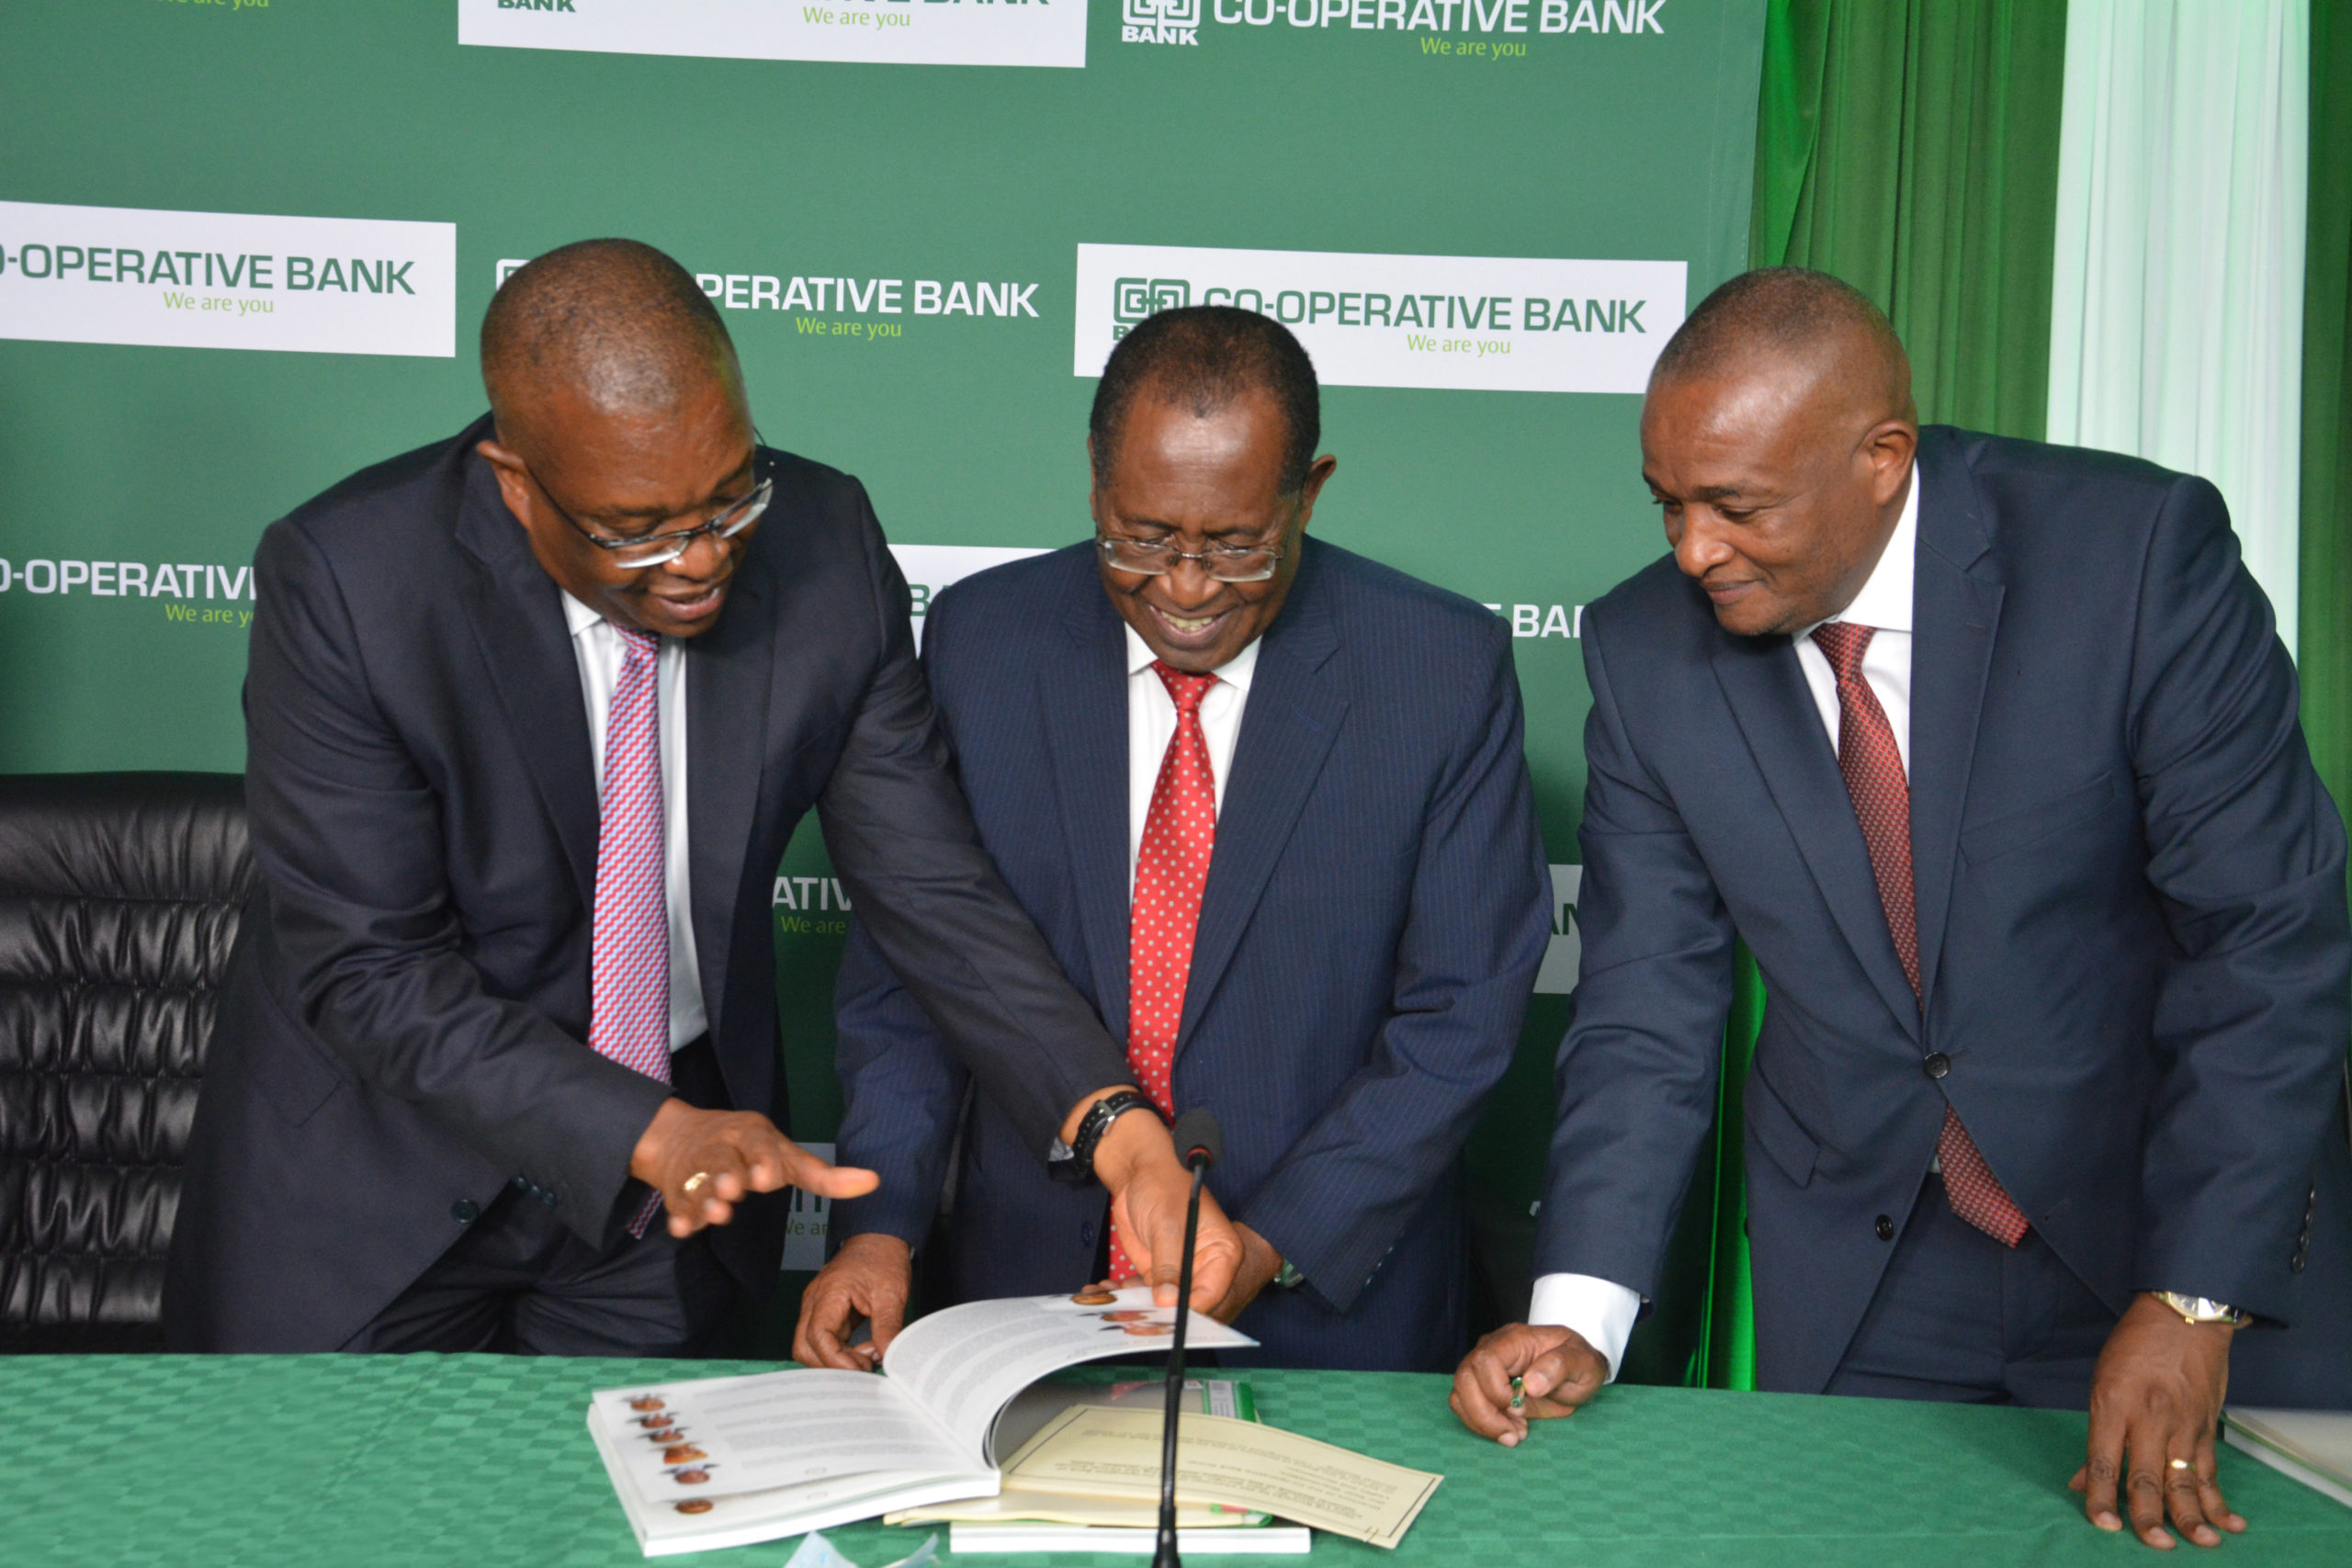 Co-op bank AGM ratifies KSh5.9 billion dividend payout and the acquisition of 90 per cent equity stake in Jamii Bora (Kingdom Bank)